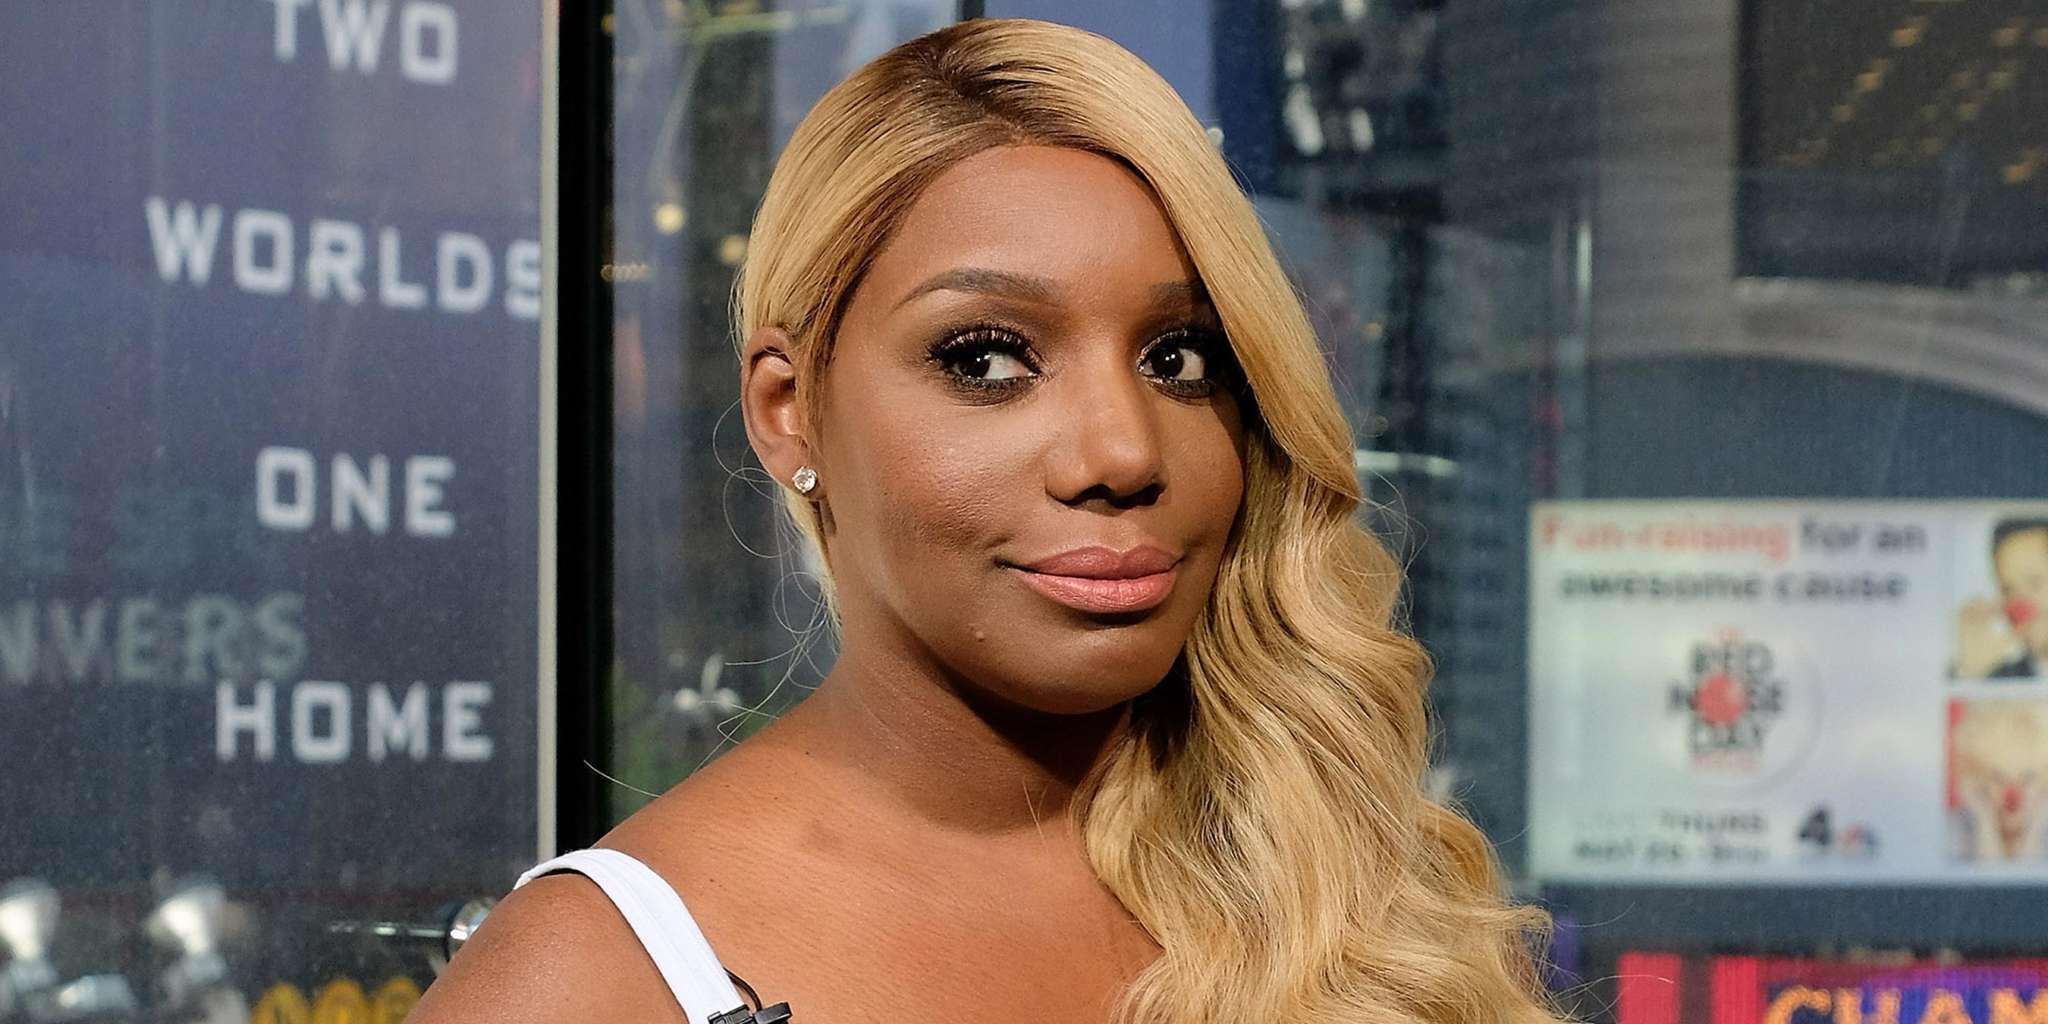 NeNe Leakes Shares A Video On Her YouTube Channel To Recap A RHOA 'Hairy Situation'